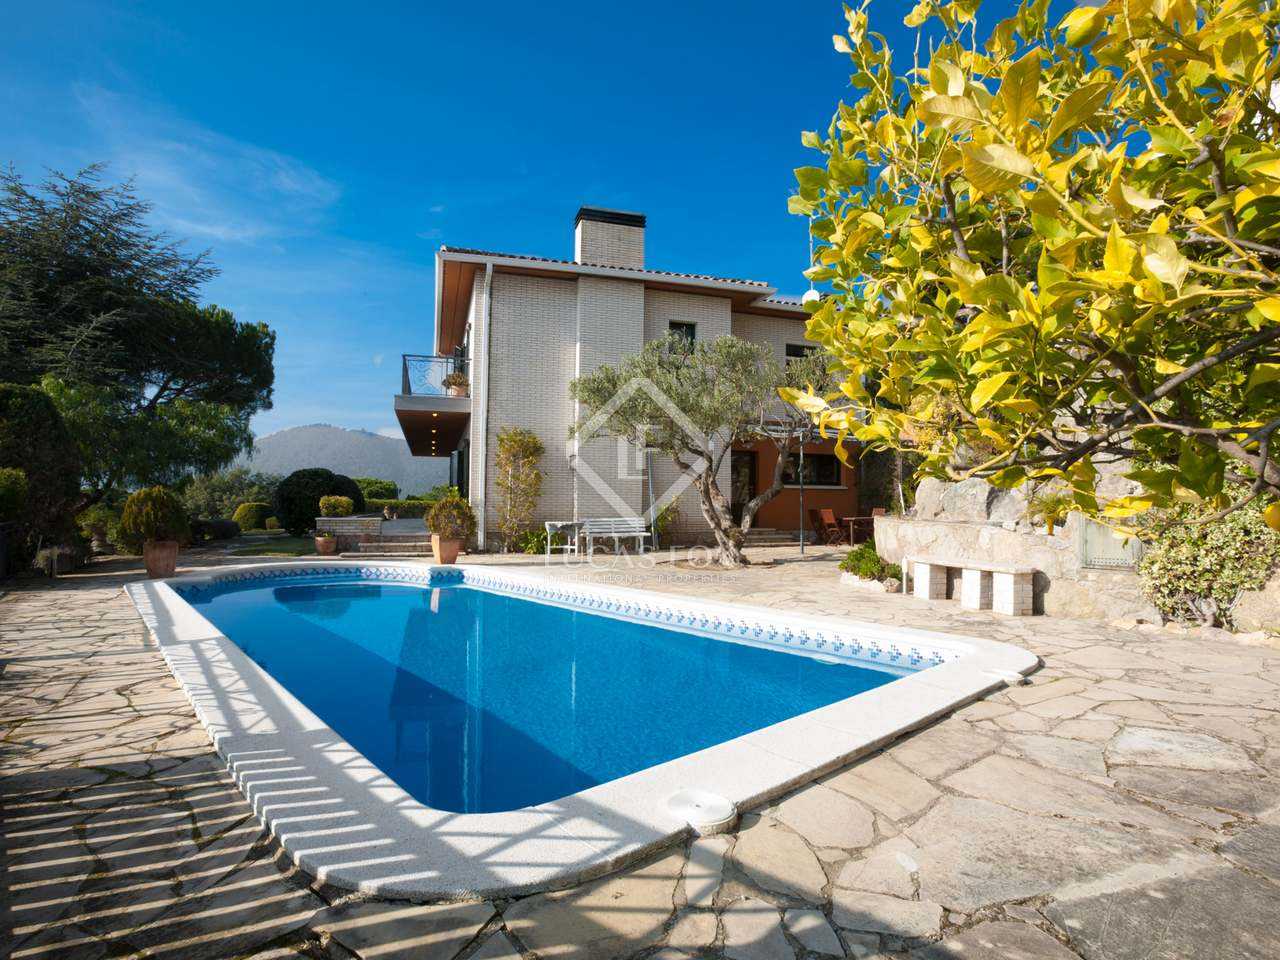 5 bedroom house with pool and sea views for sale in cabrils for 5 bedroom house with pool